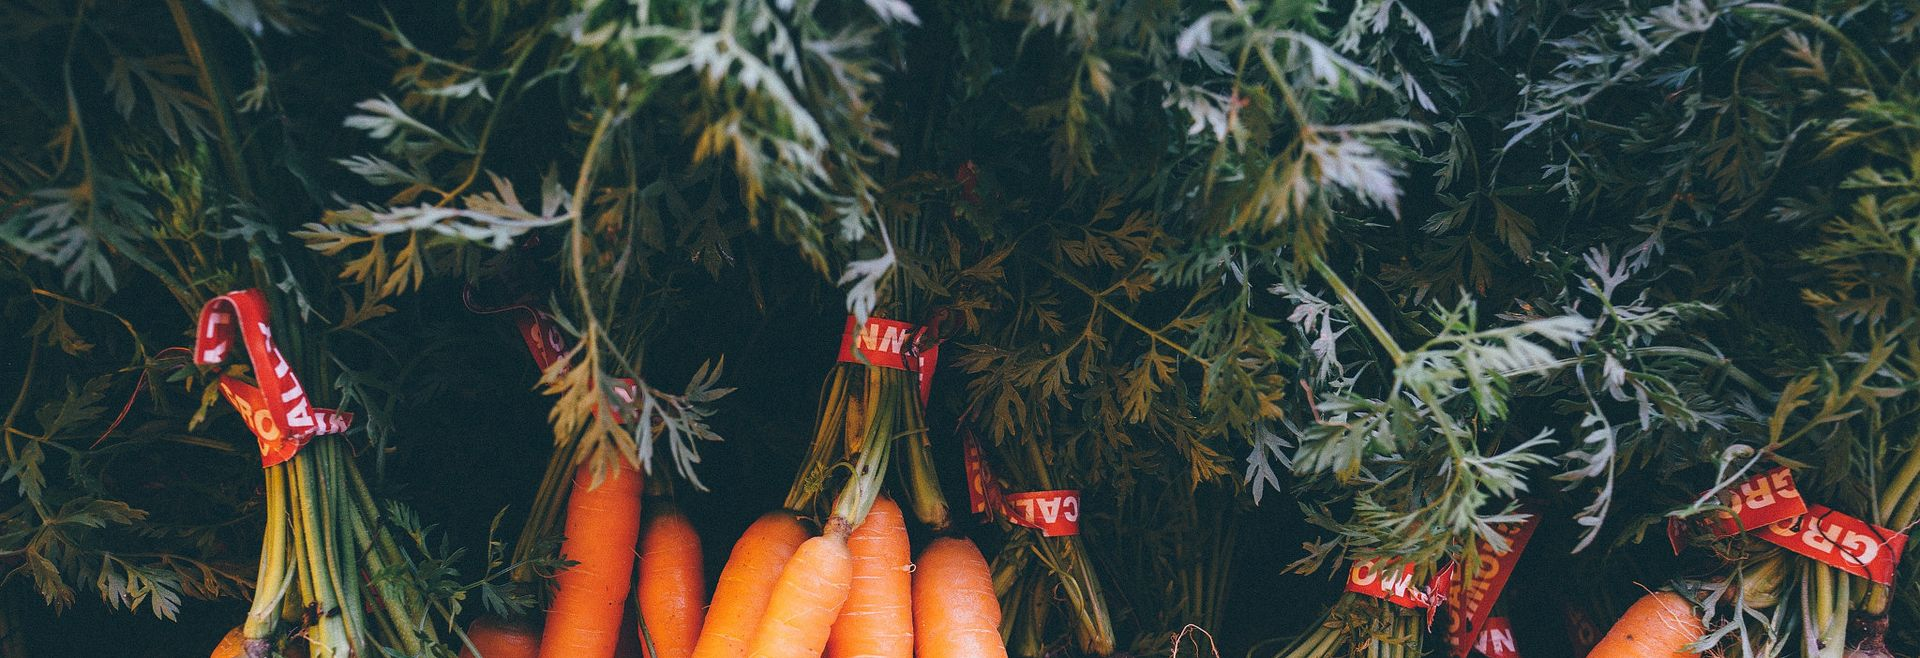 Close up up of carrots at a farmers market